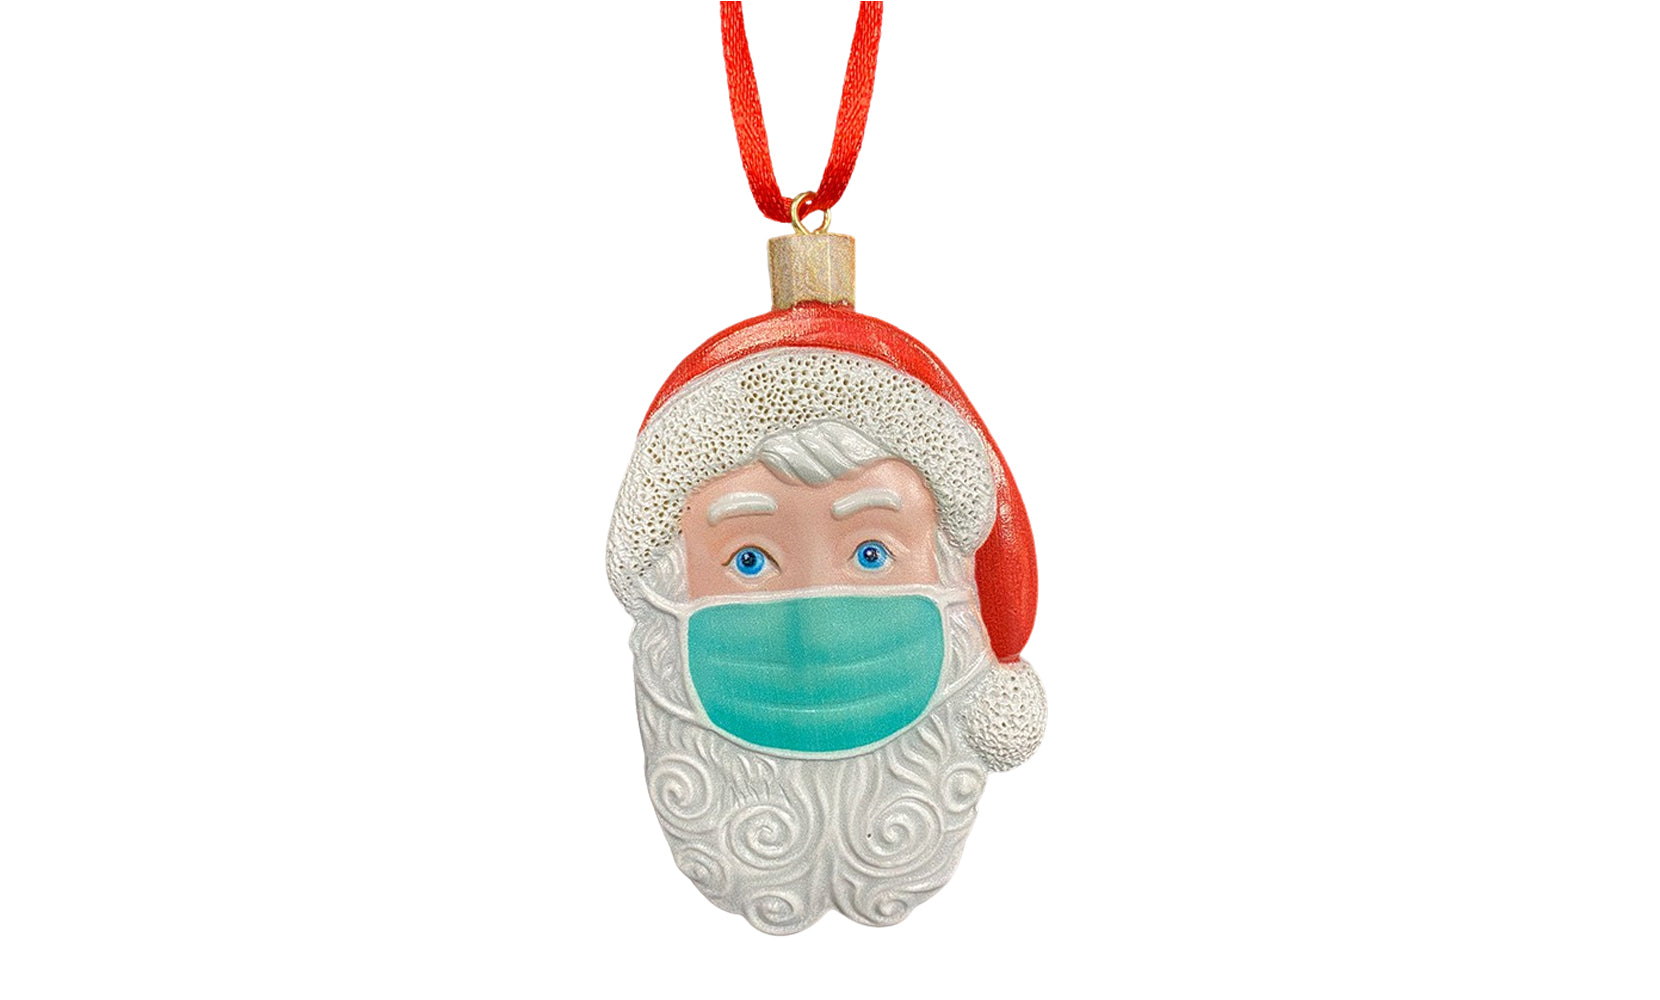 2020 Special Santa with Mask Ornament for Christmas  Holiday Celebration Decoration